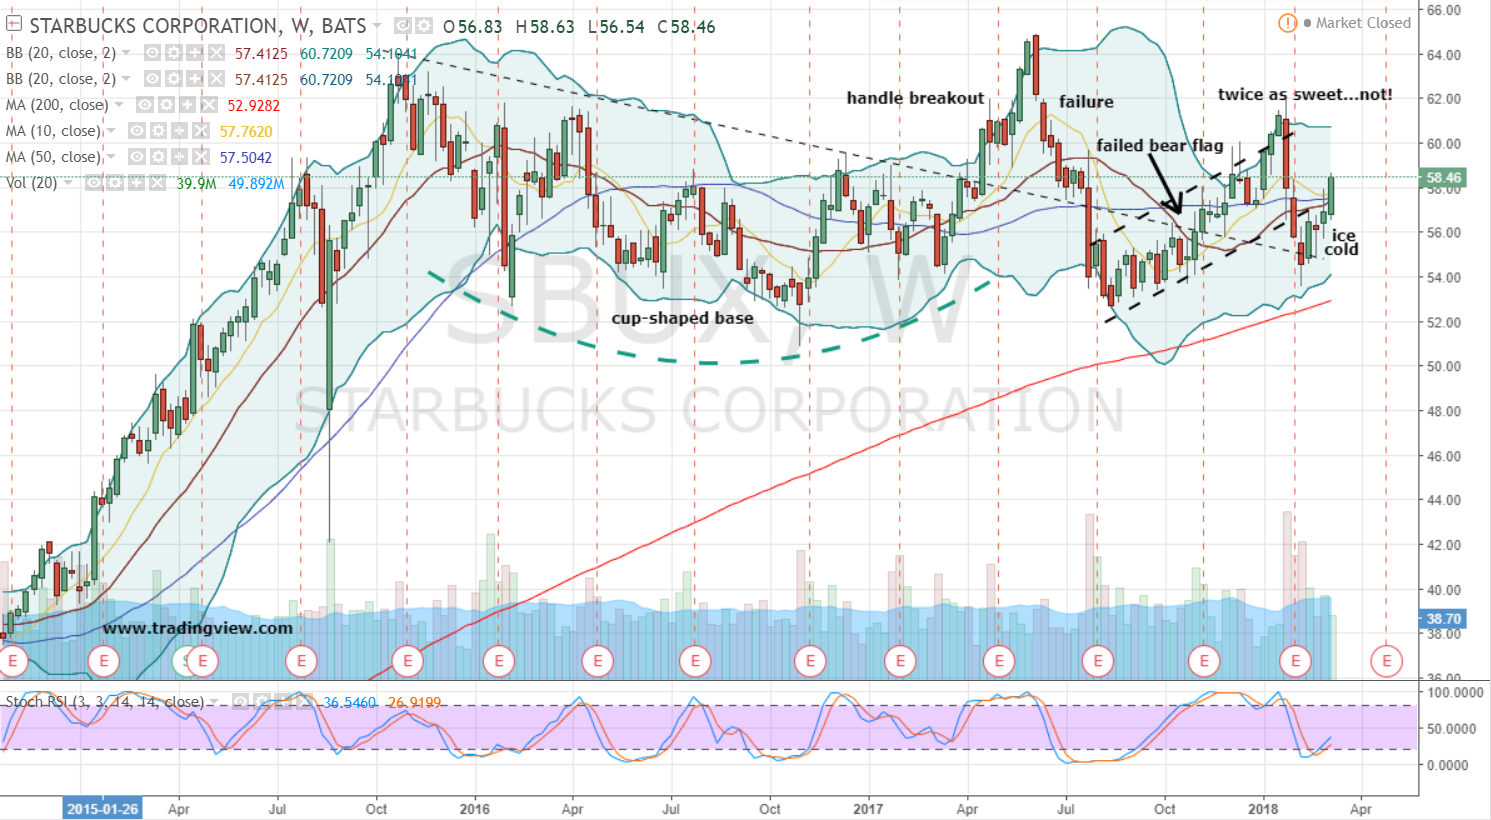 Ferguson Wellman Capital Management Inc. Cuts Stake in Starbucks Co. (NASDAQ:SBUX)